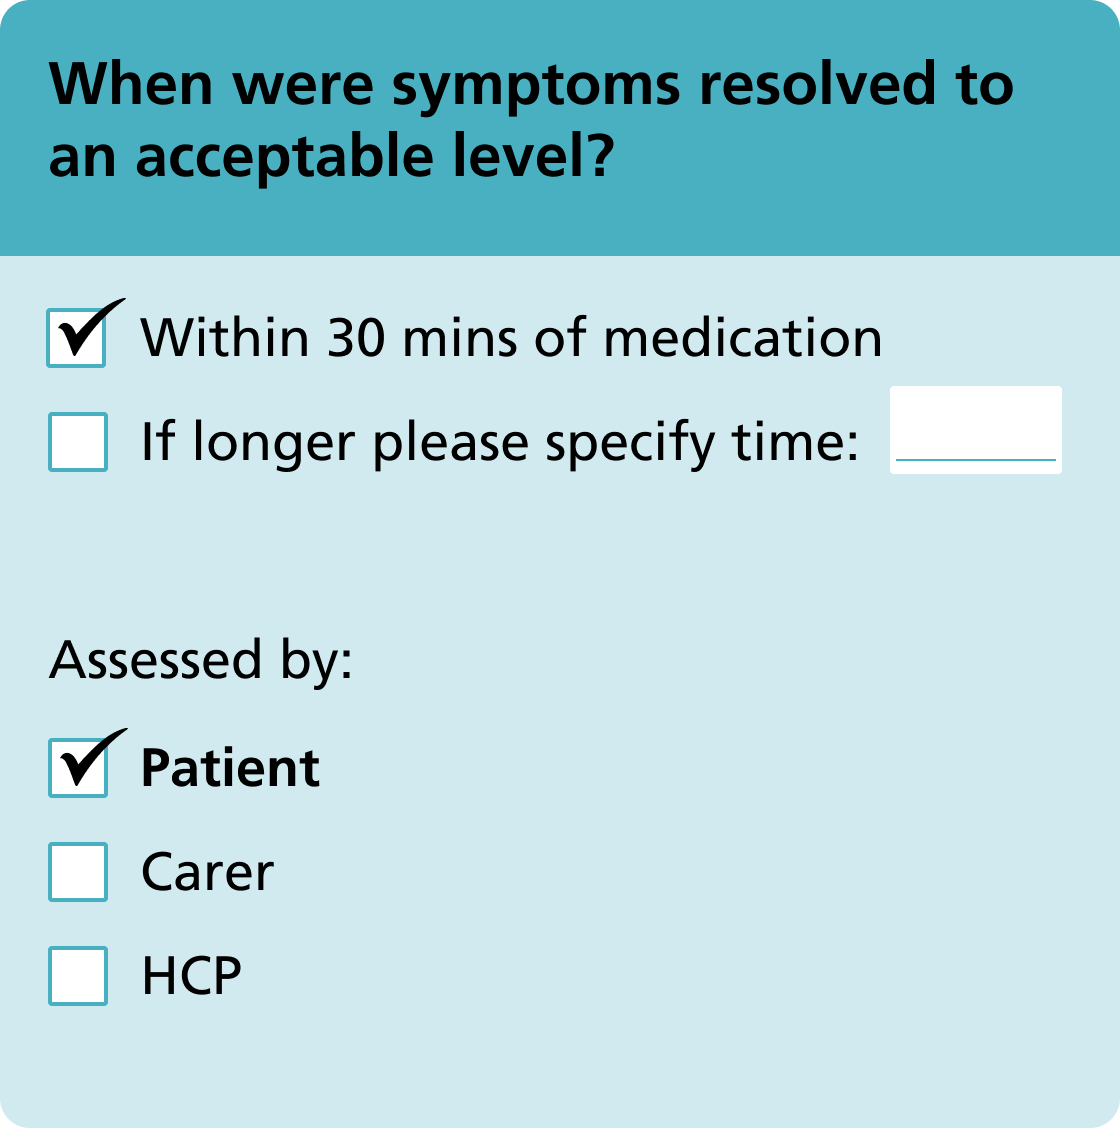 When were symptoms resolved to an acceptable level?